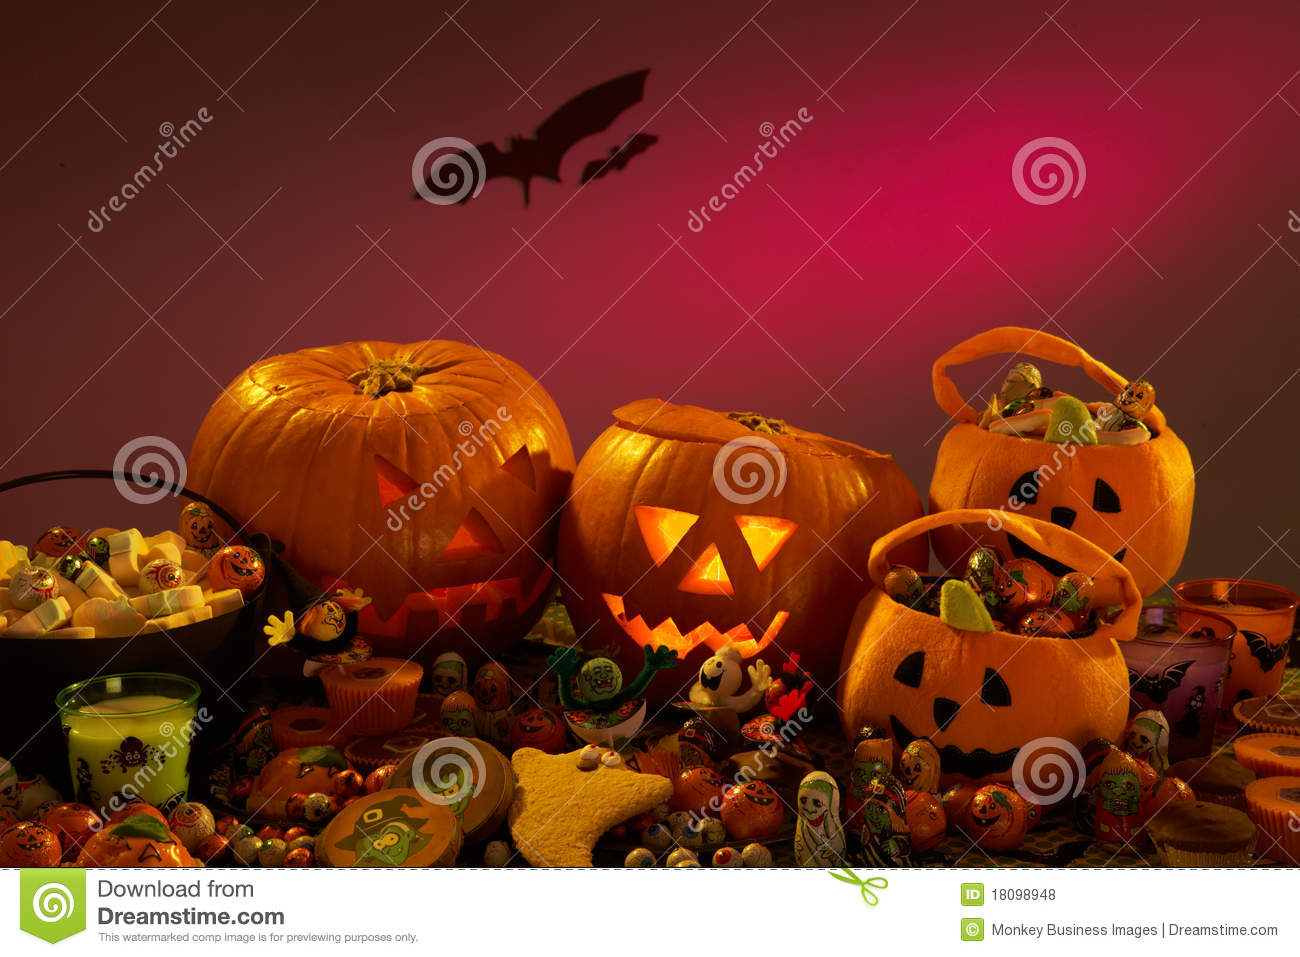 Halloween Party Decorations With Pumpkins Royalty Free Stock ...